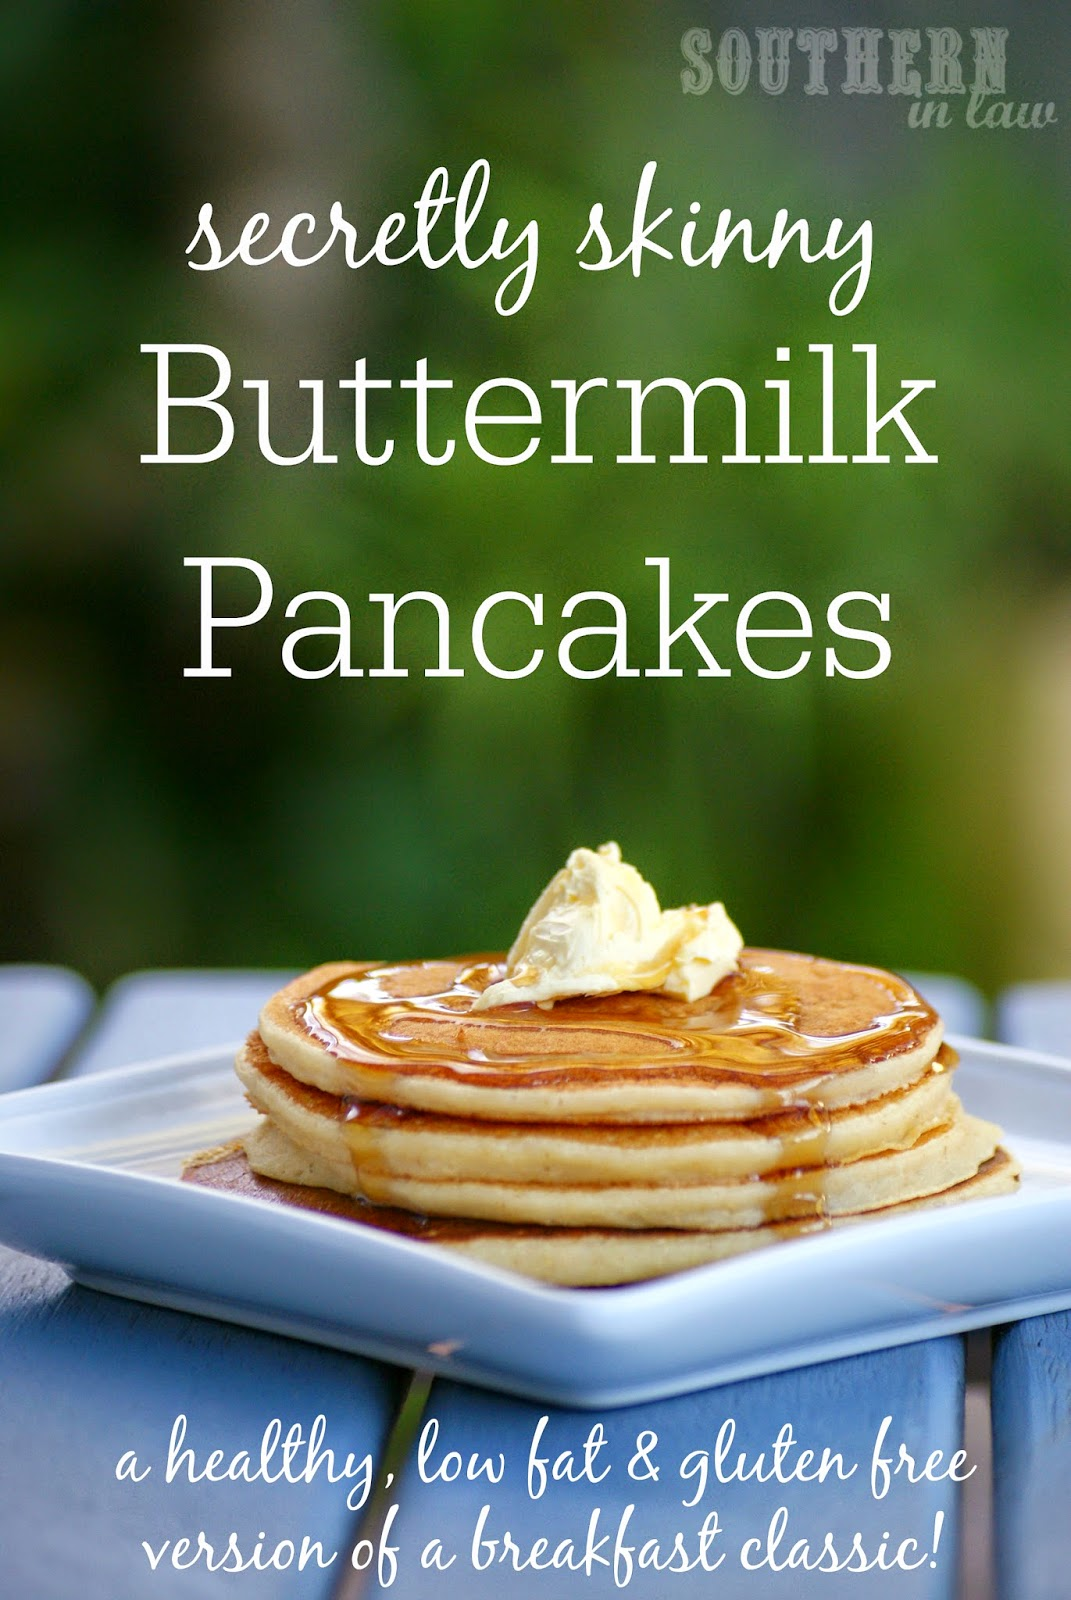 Secretly Skinny Buttermilk Pancakes Recipe - low fat, gluten free, healthy, refined sugar free, low sugar, clean eating friendly